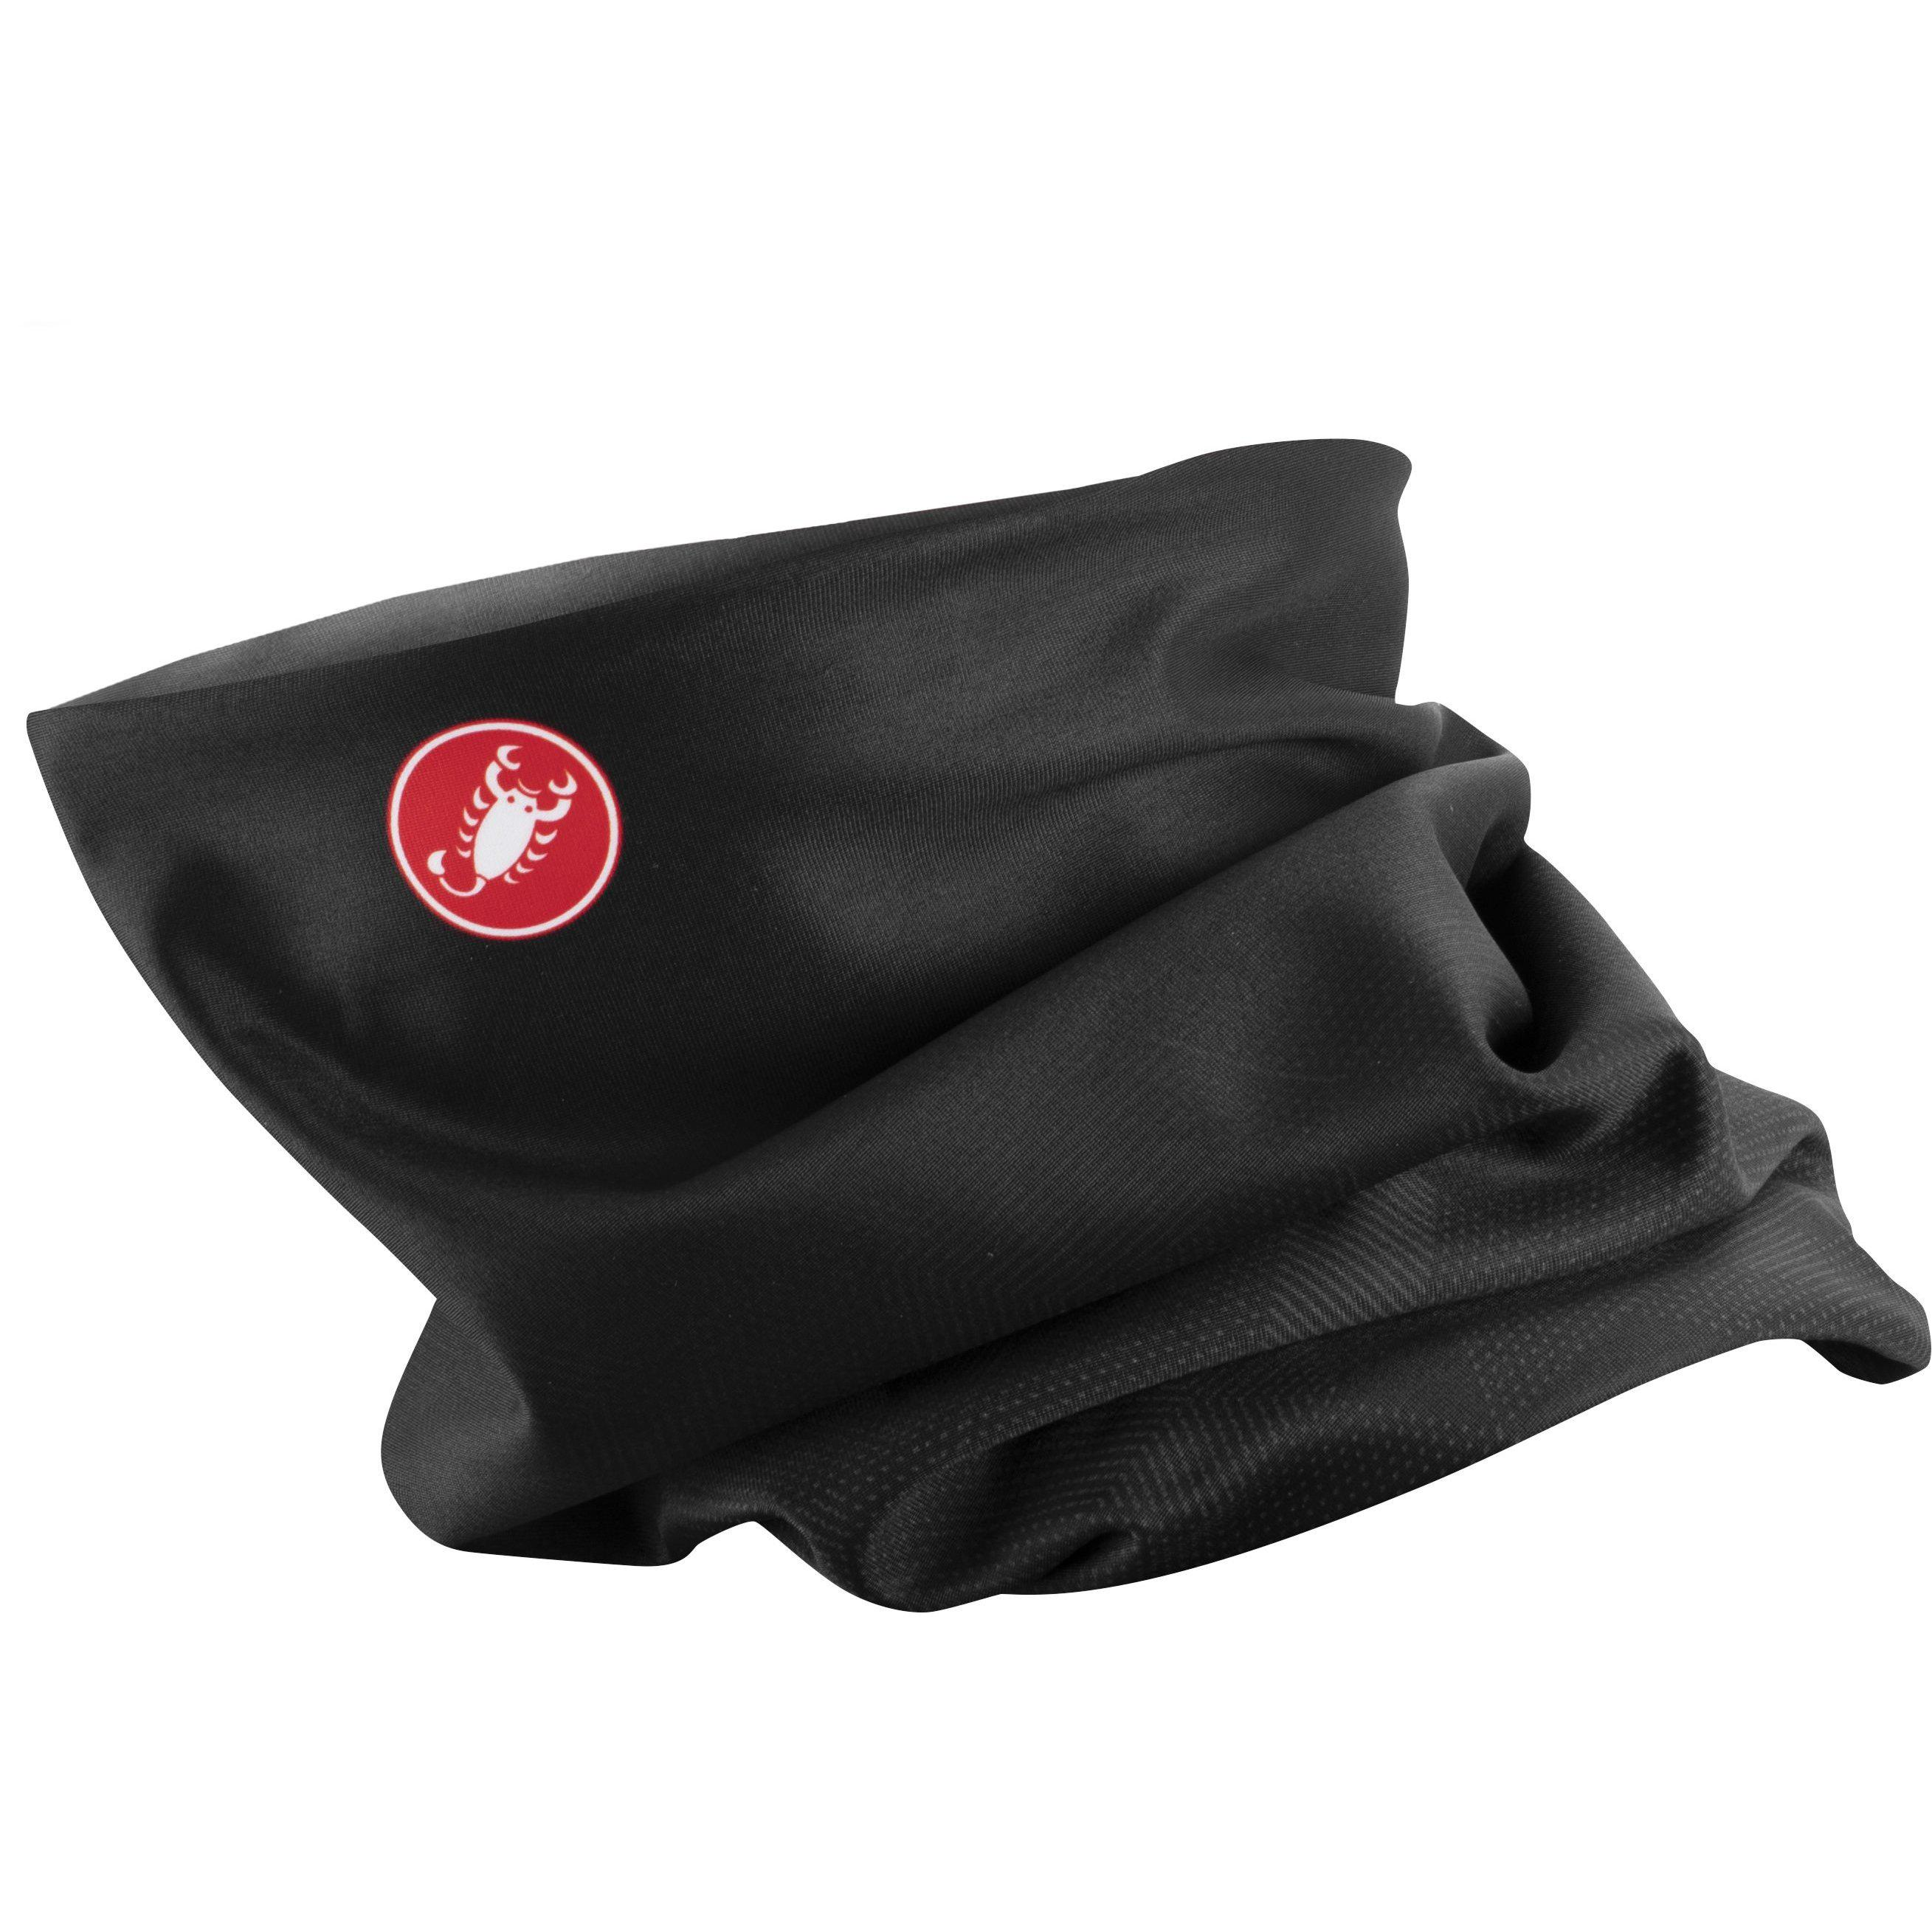 Castelli-Castelli Pro Thermal Women's Headthingy-Light Black-UNI-CS205730858-saddleback-elite-performance-cycling